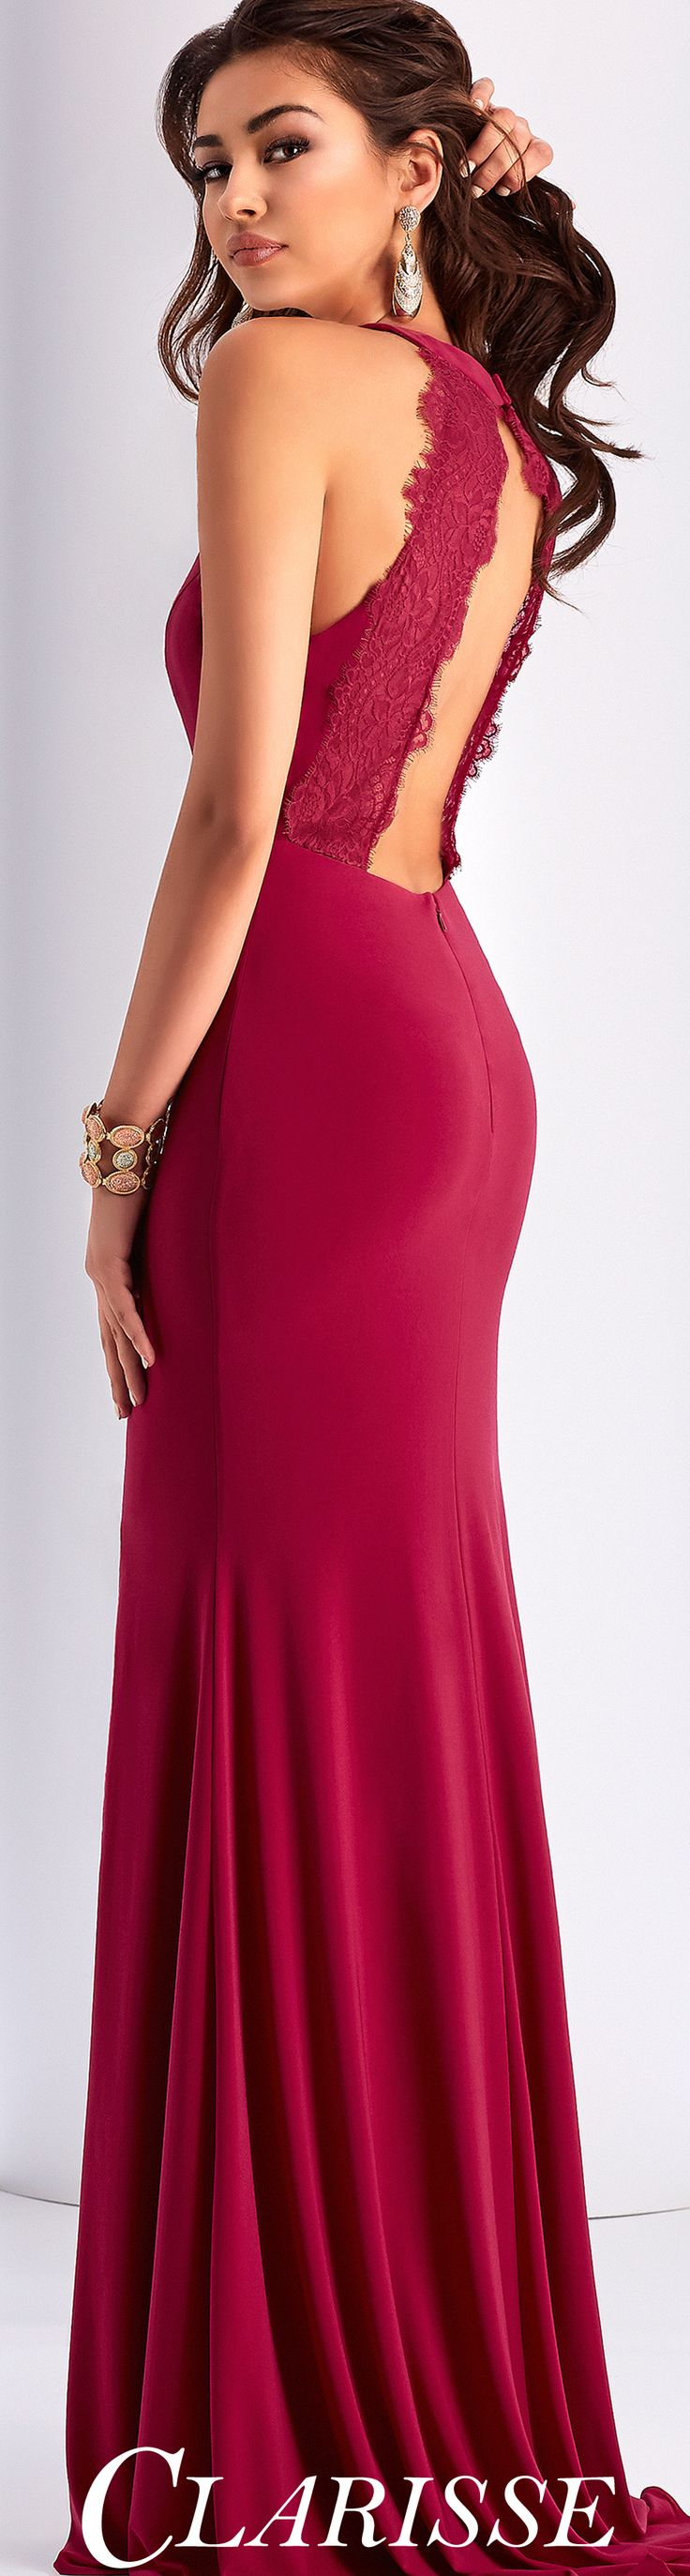 The 25+ best Fitted prom dresses ideas on Pinterest ...